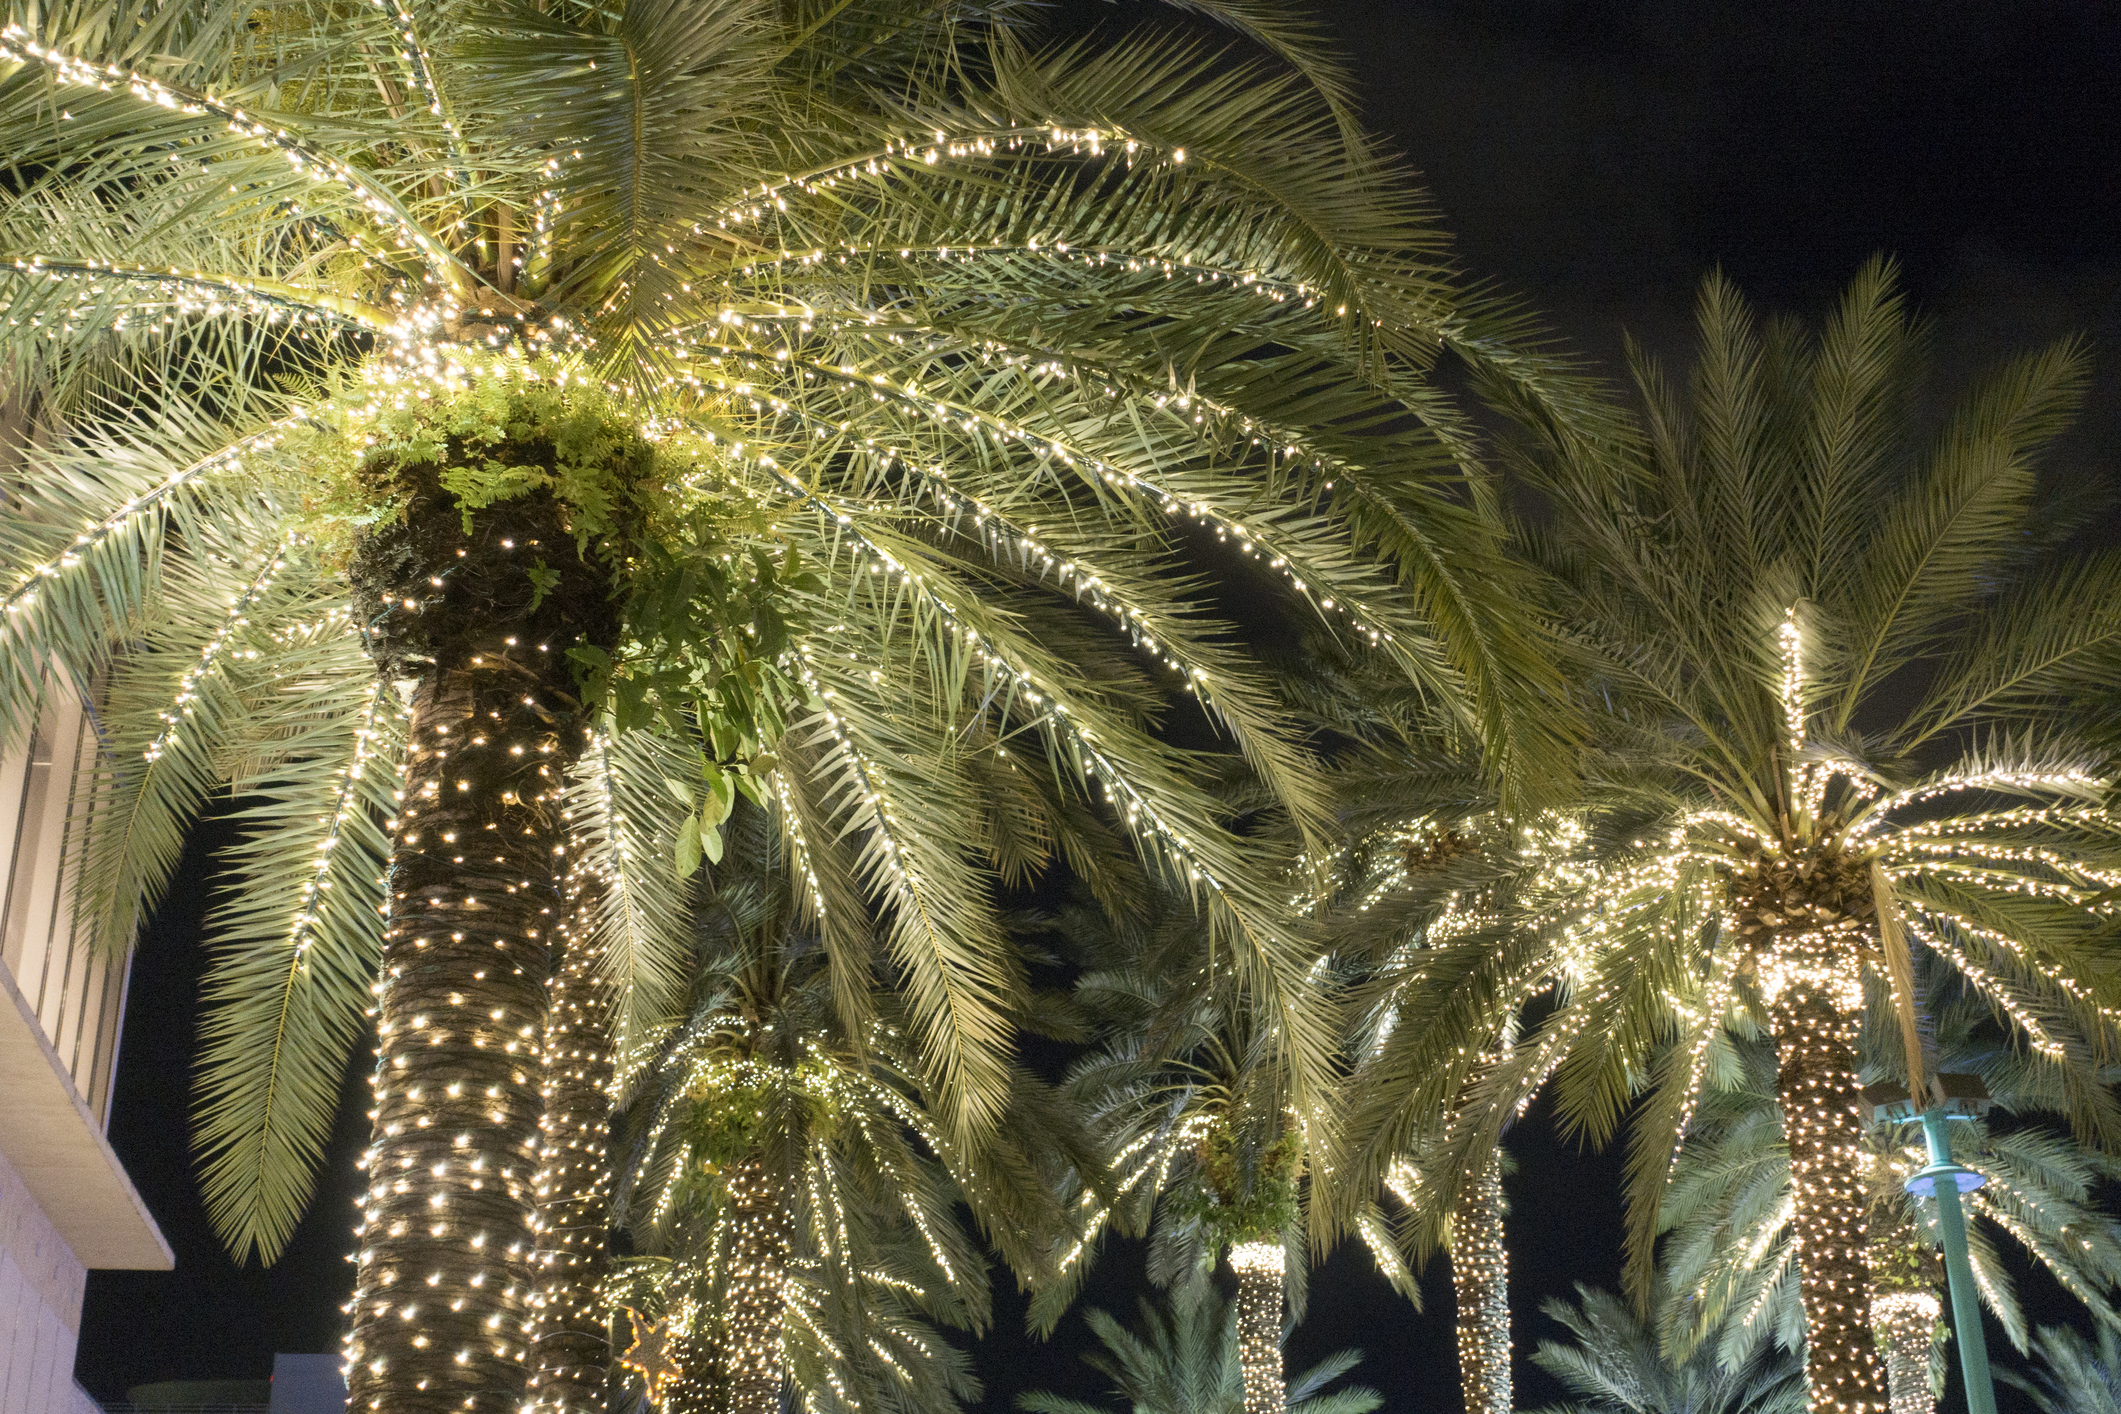 Holiday Palm trees with bright lights.